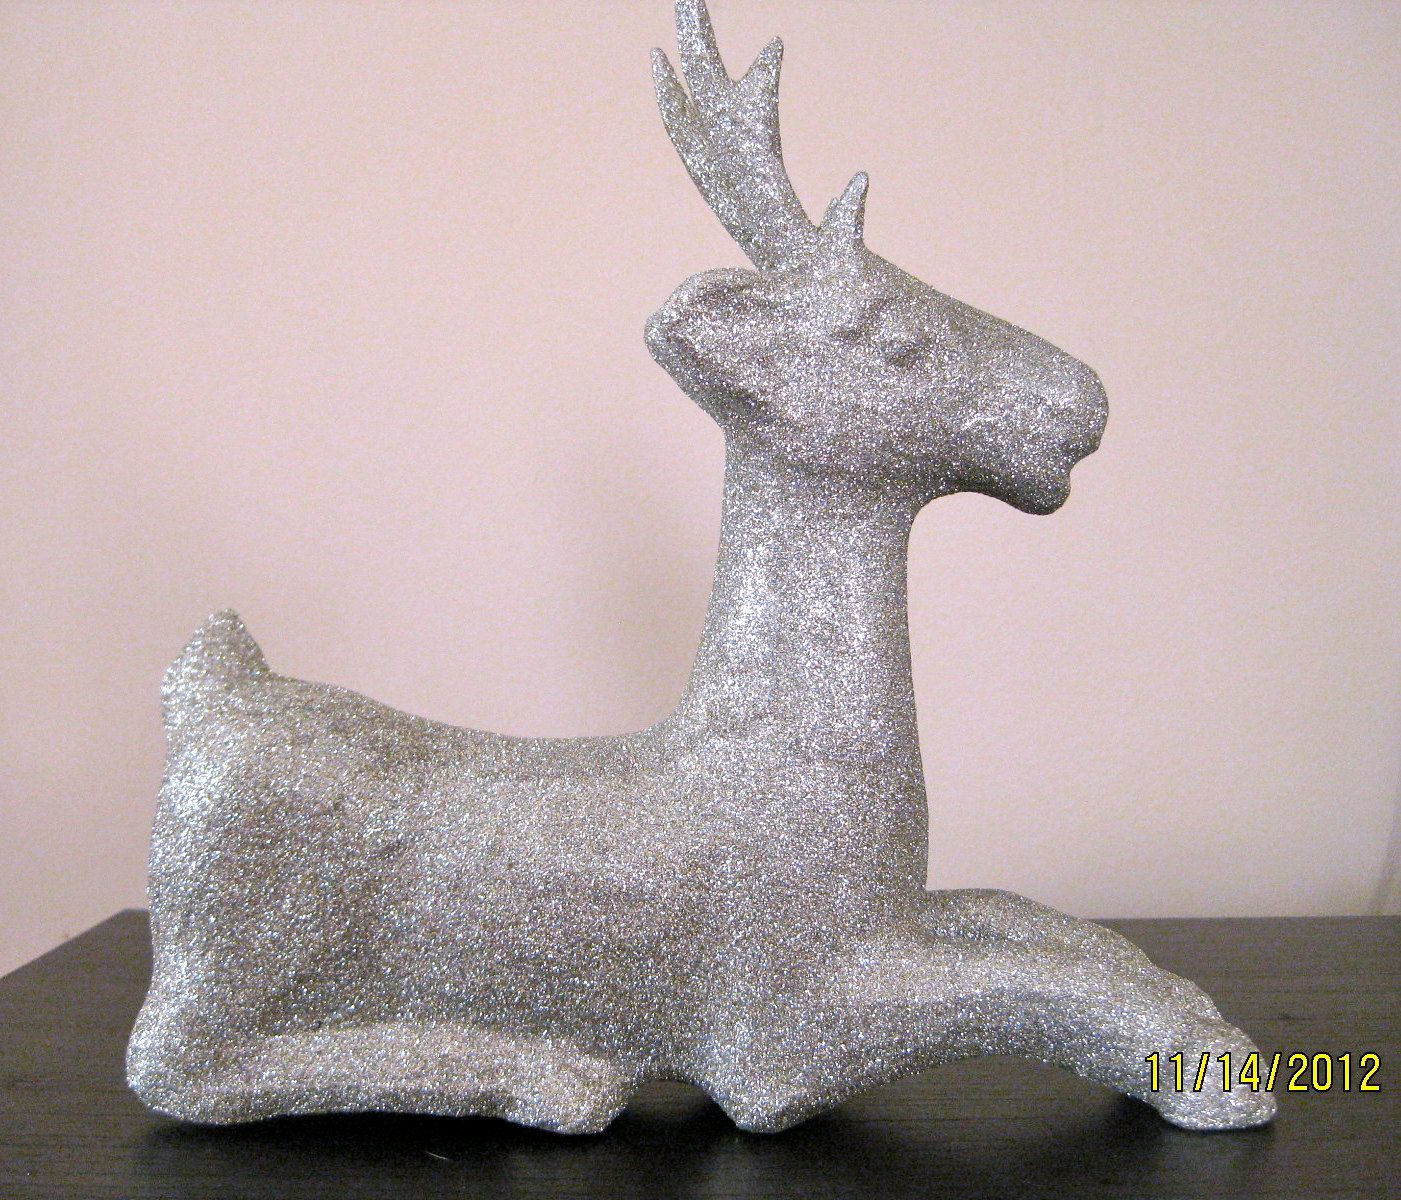 Christmas Glittered Reindeer Laying Down Decoration by RobinLynnF on etsy